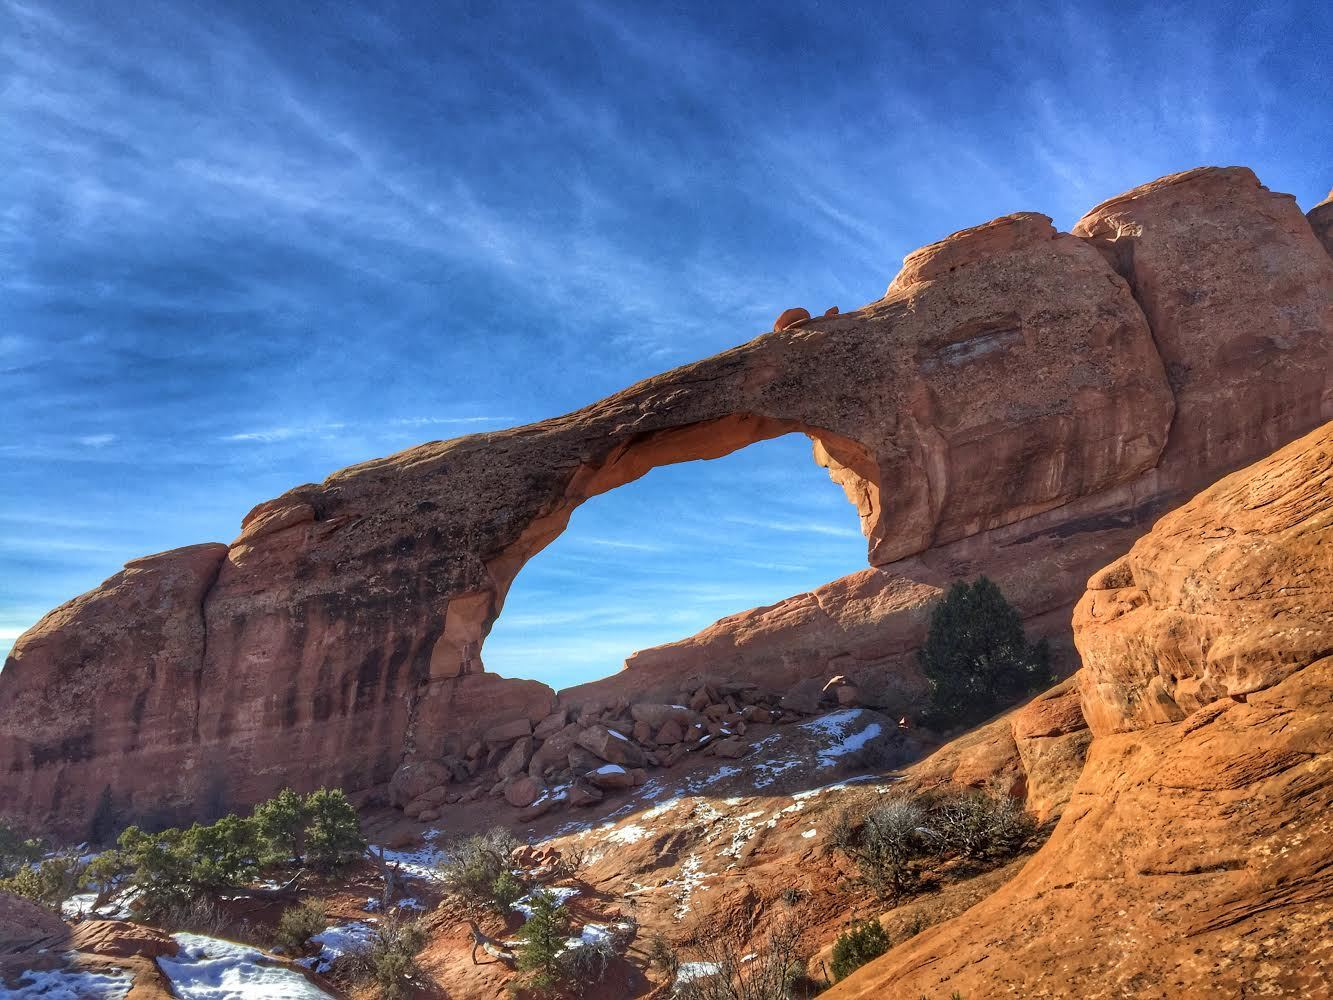 A large boulder arch stretches across a blue sky, speckled with patches of snow